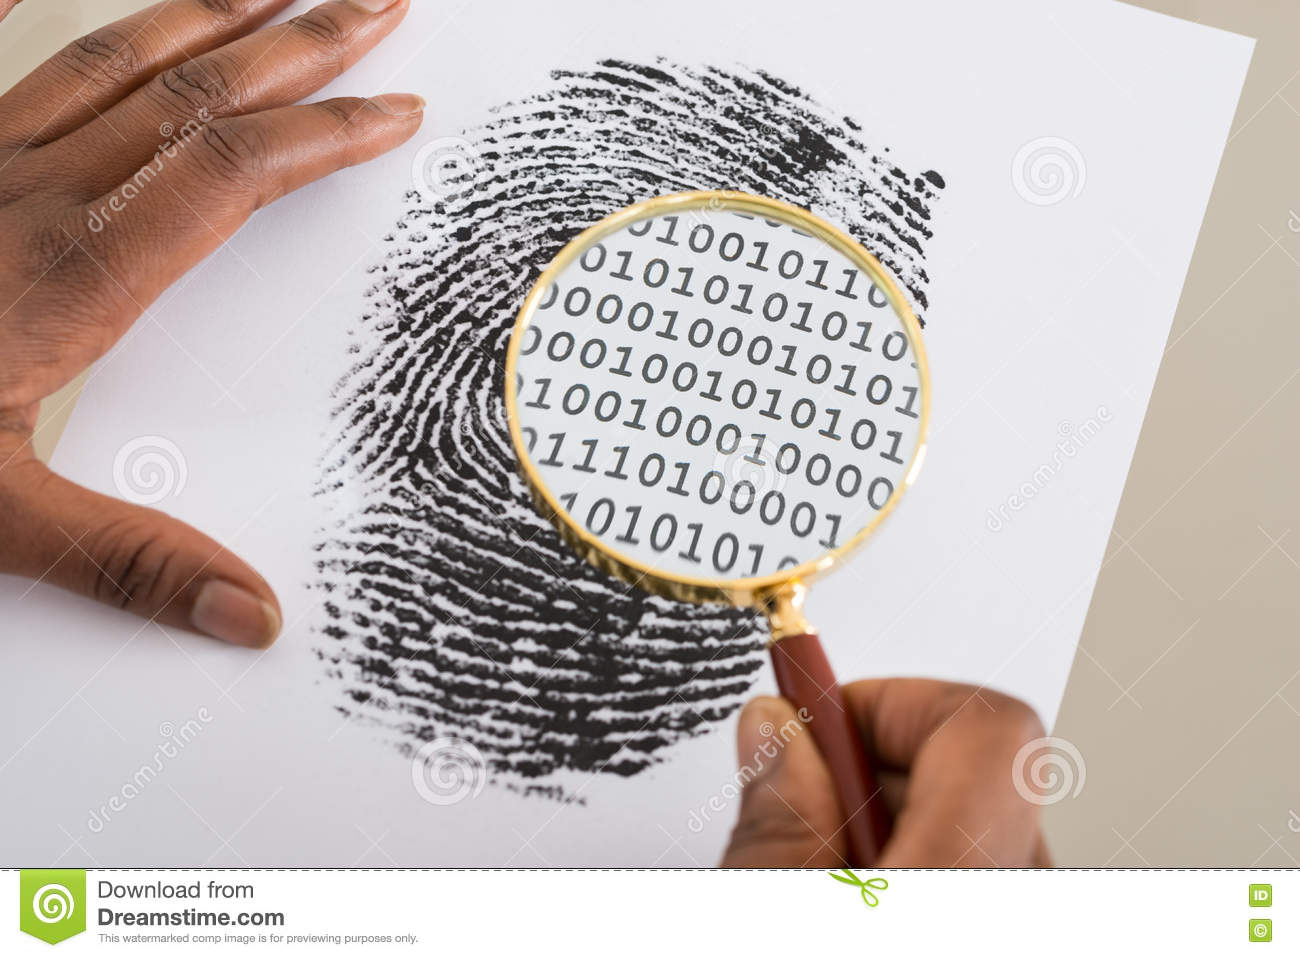 personality is a fingerprint to a persons identity Because everyones fingerprints are unique the loops and whorls are different for everyone although identical twins can share dna, their fingerprints will be uniquethey are unique to each person so once on file they can be used forthat.